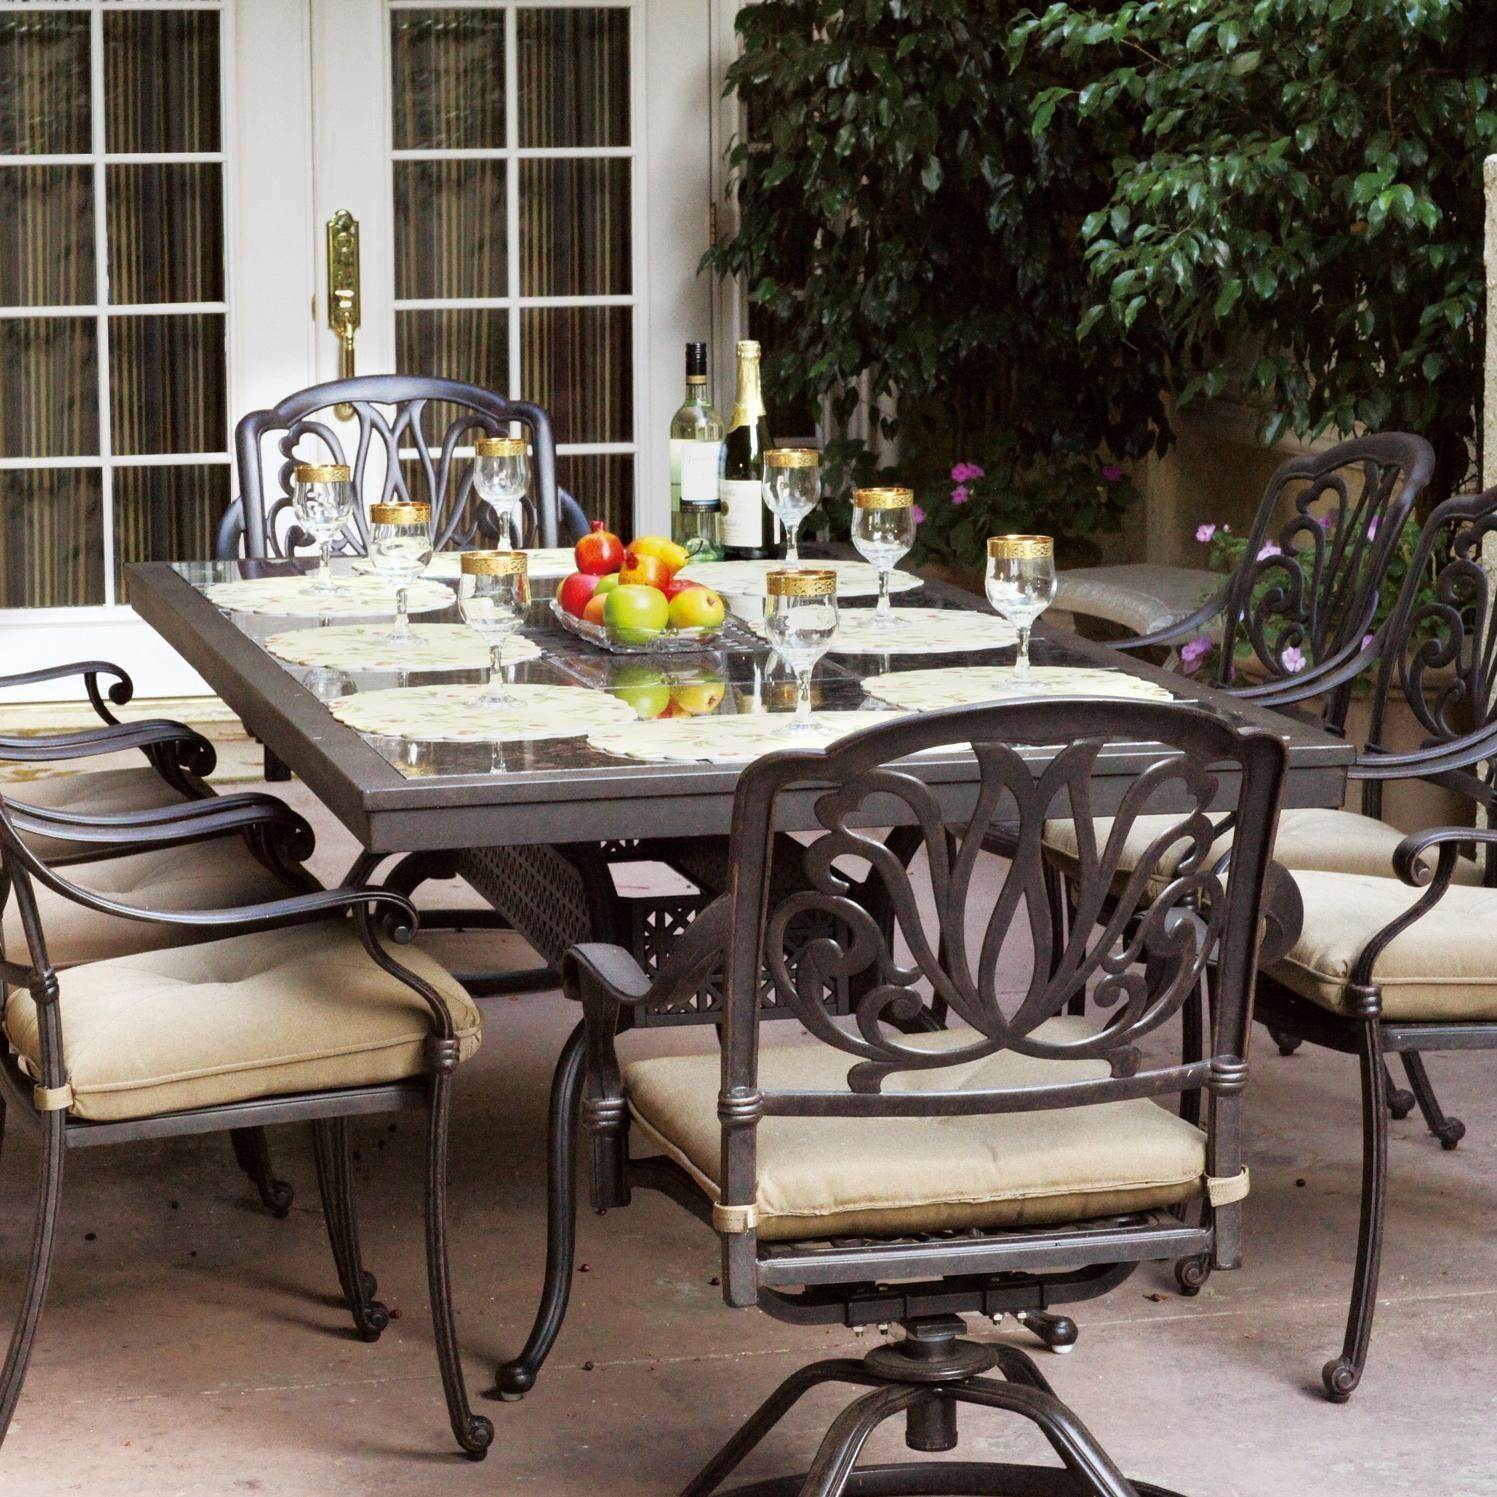 patio dining sets for 8 people photo - 3